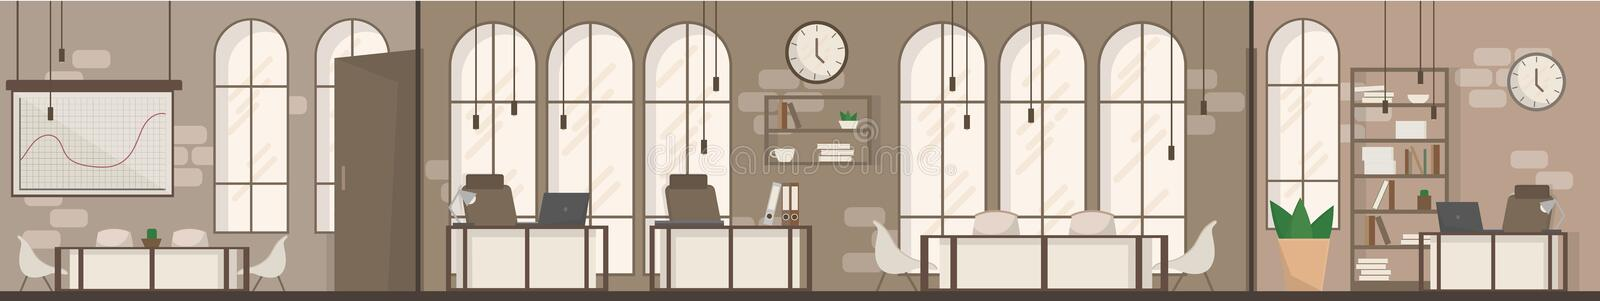 Empty Office Space Interior Modern Workplace Space Flat Vector Illustration vector illustration